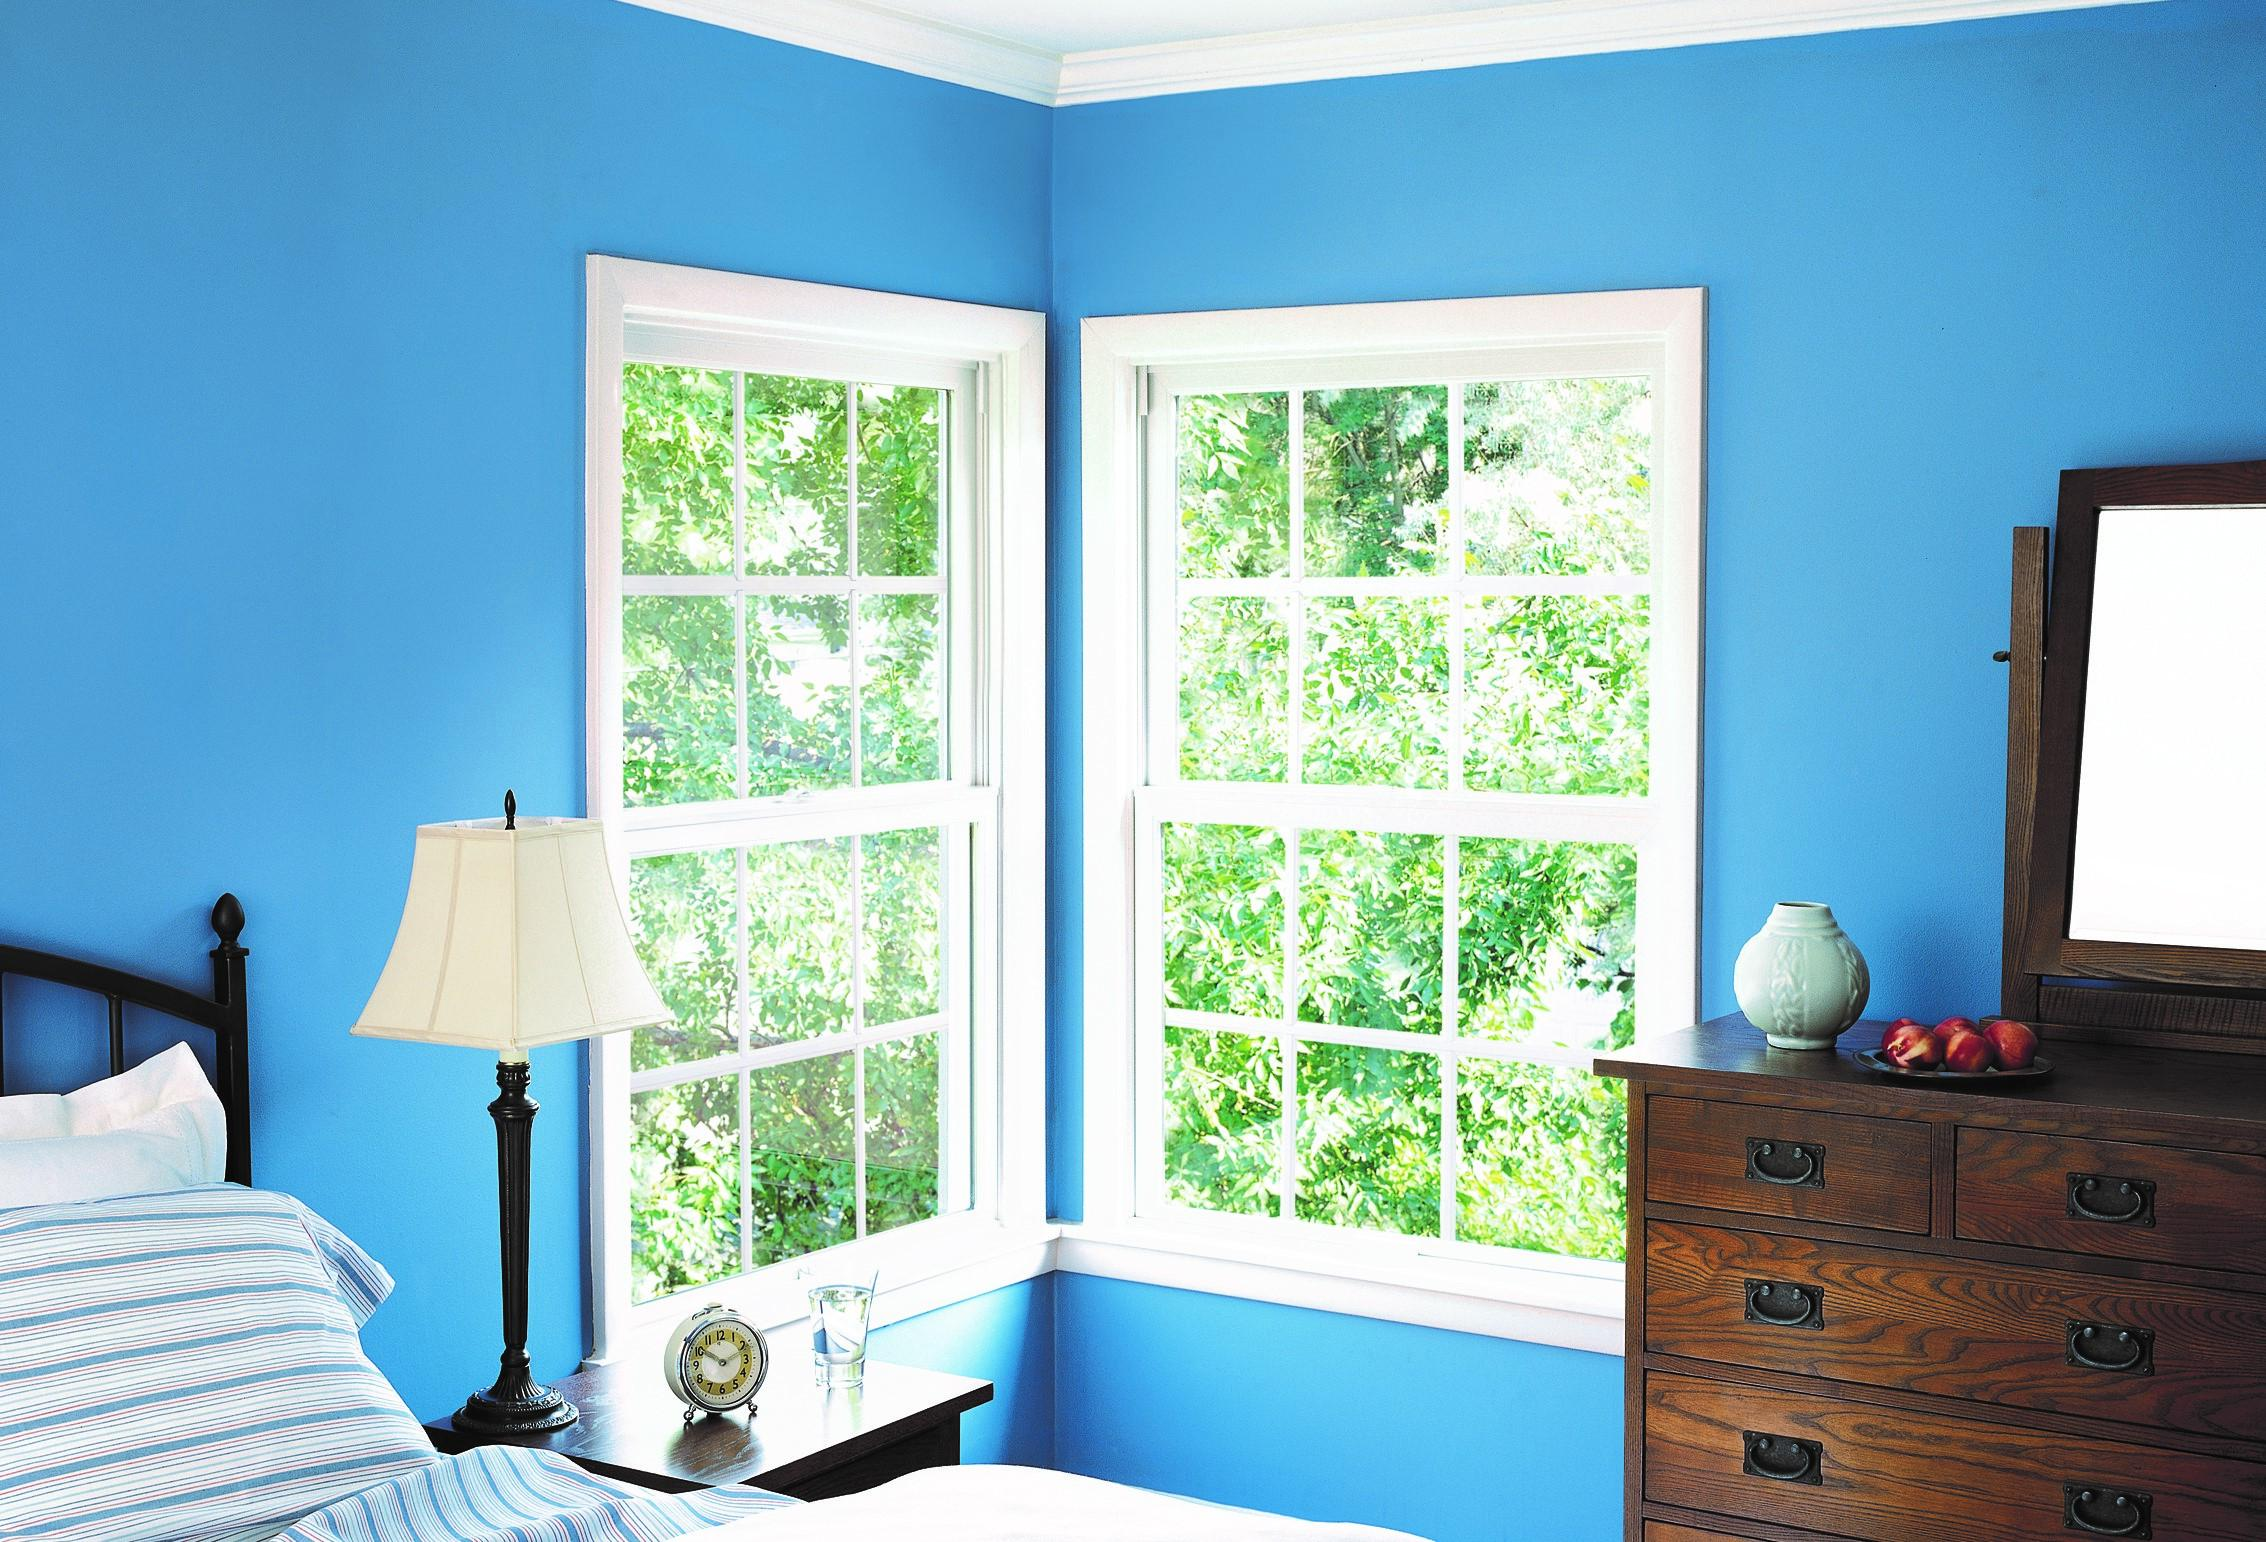 marvin infinity windows prairie style we install highquality windows from the marvin family of brands because they offer remarkable energy efficiency and lasting beauty for homes here in maine windows evergreen rockland me